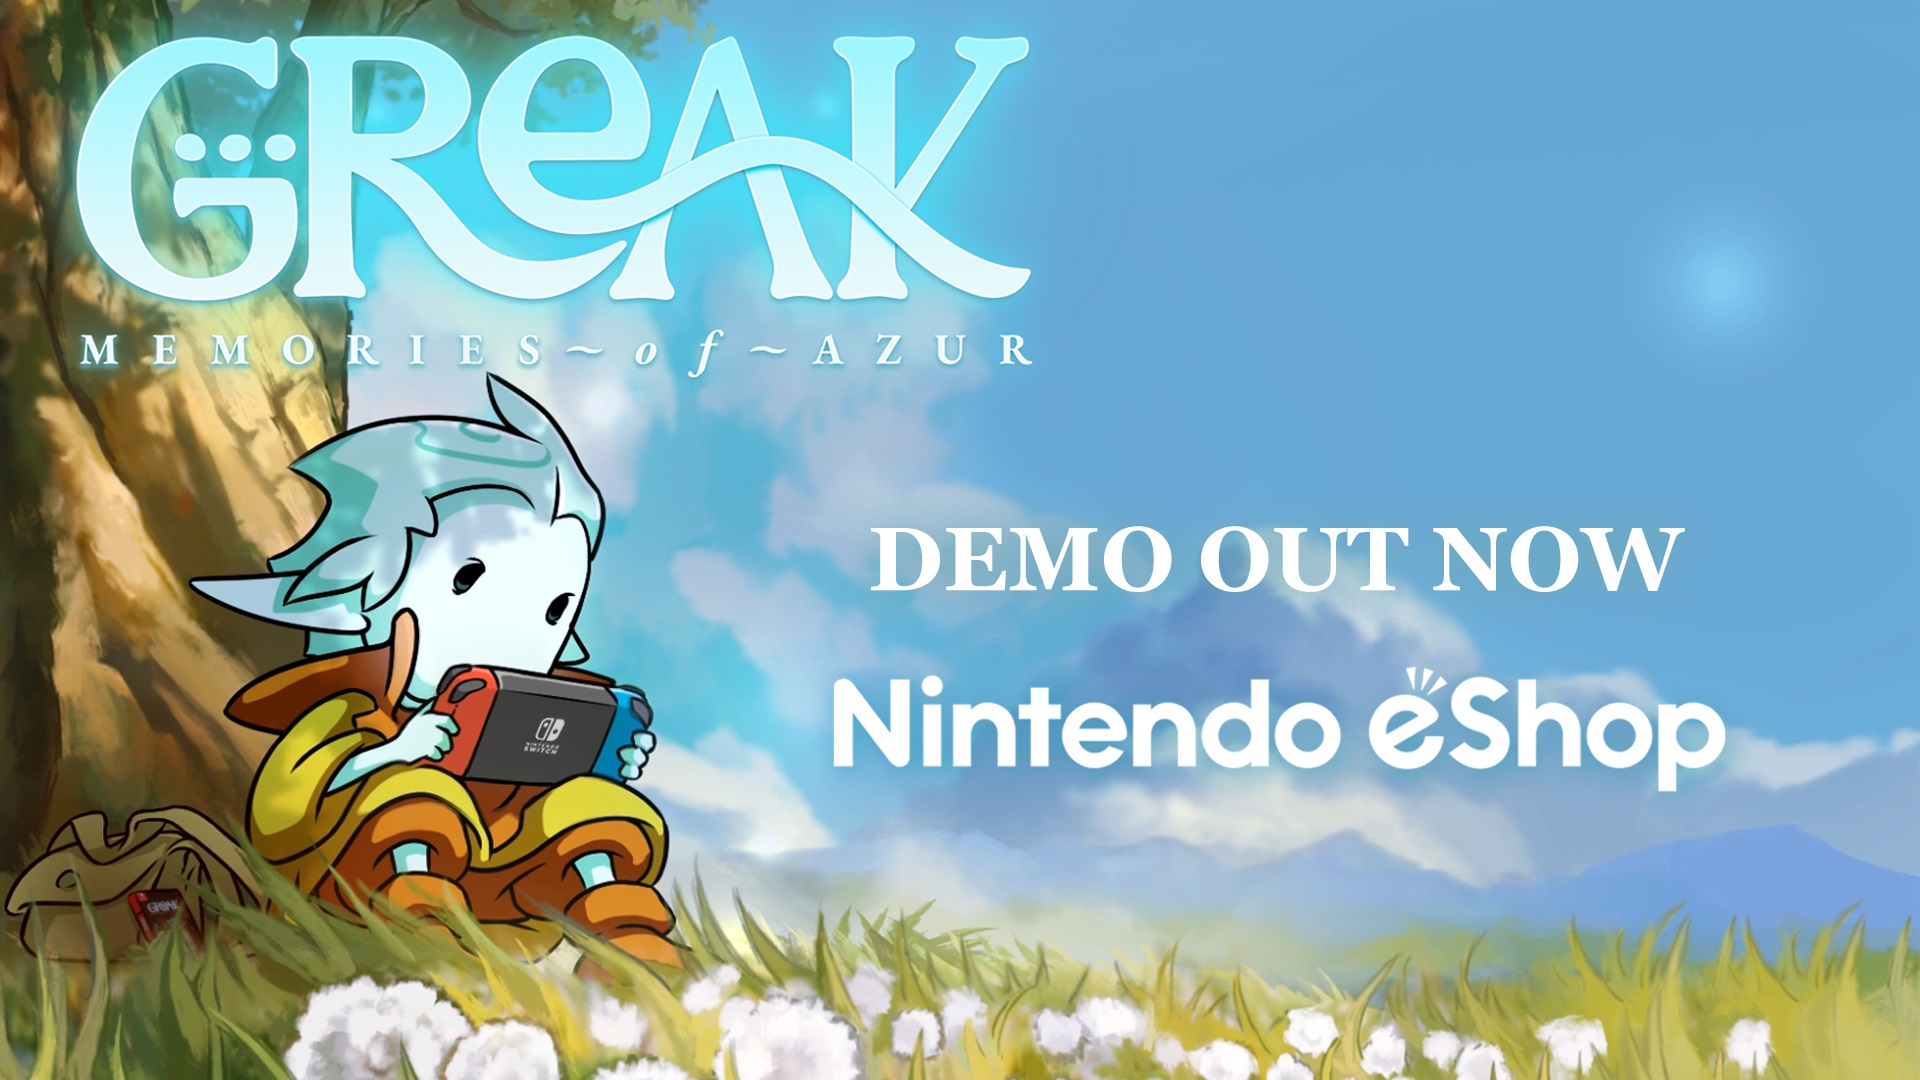 Greak: Memories of Azur Playable Demo is Now Available